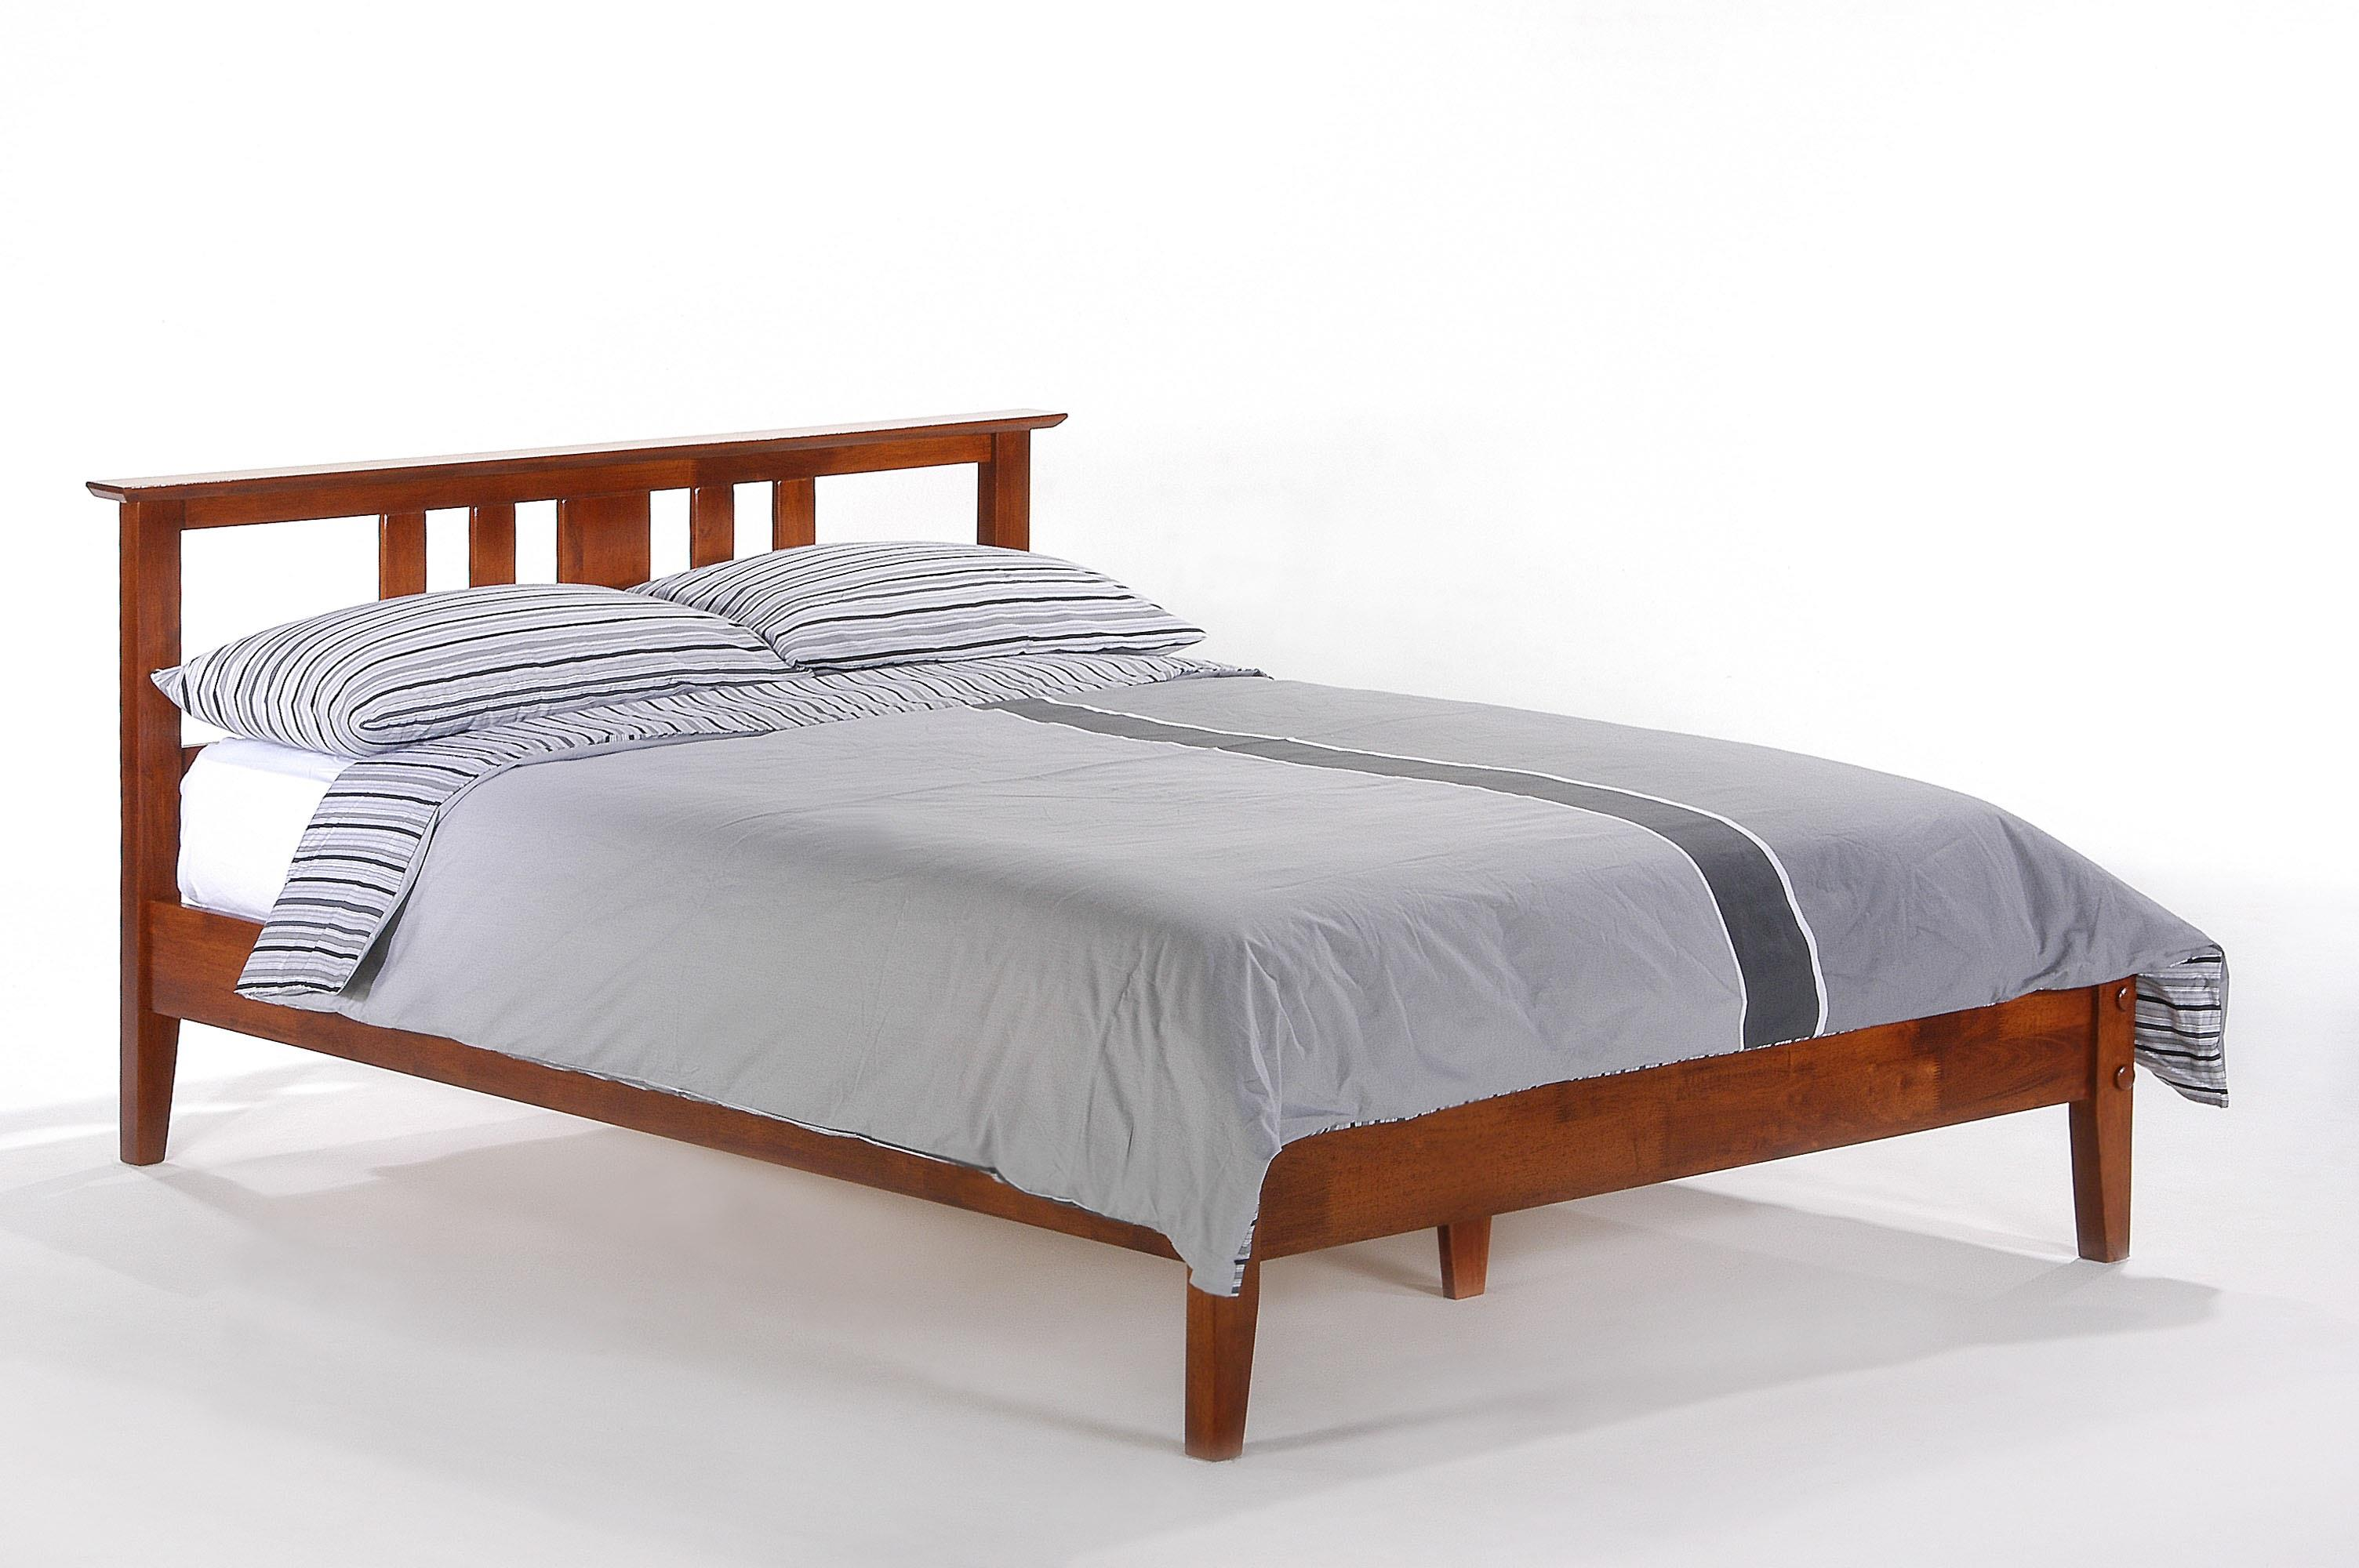 Thyme King Bed by Pacific Manufacturing at SlumberWorld